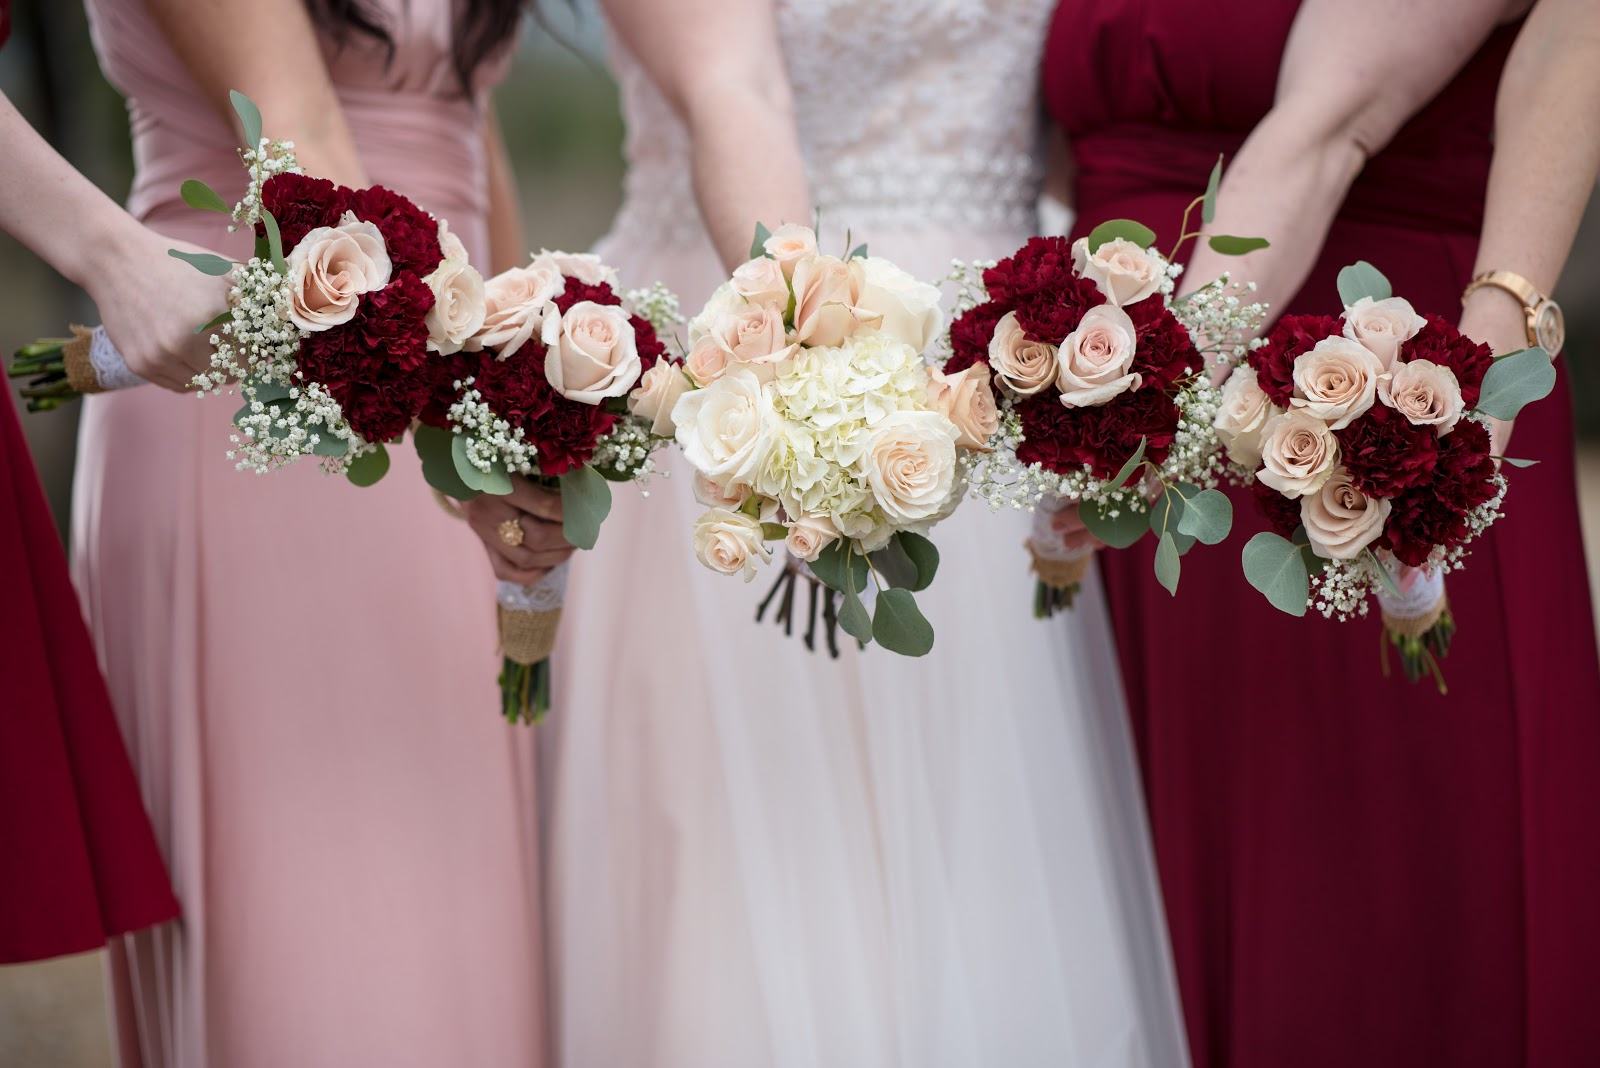 bouquets of flowers for bride and bridesmaids